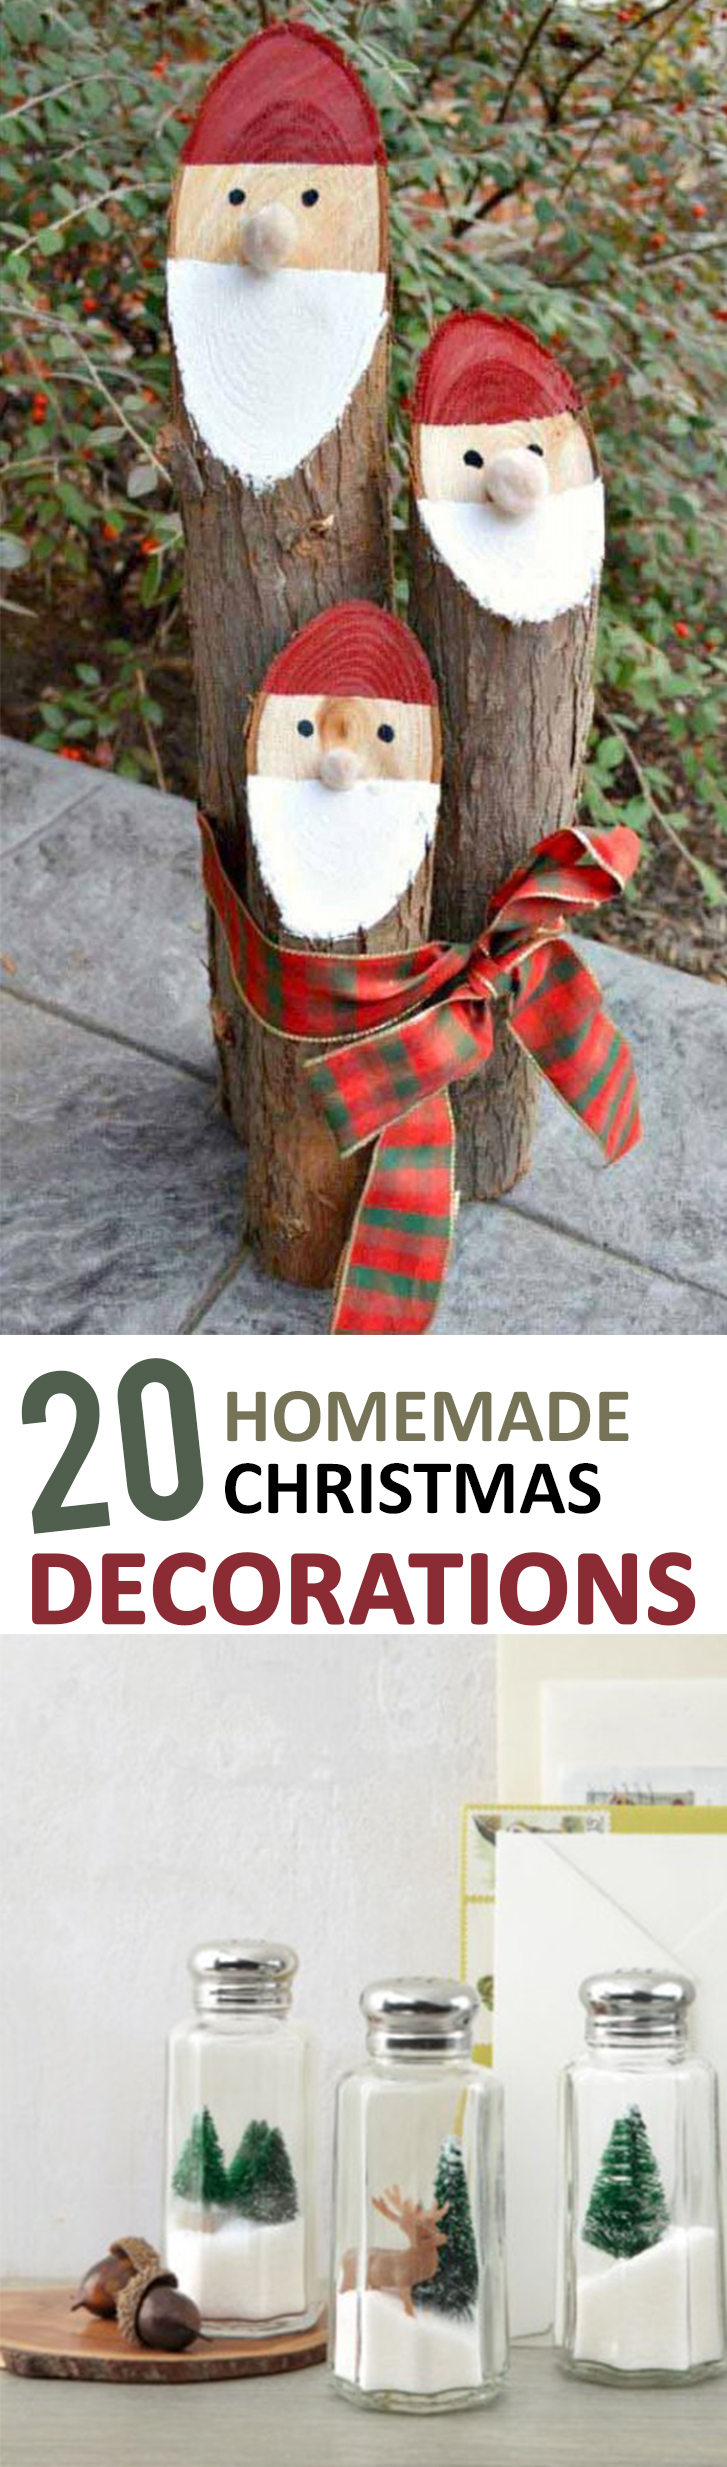 20 Homemade Christmas Decorations: easy christmas decorations to make at home